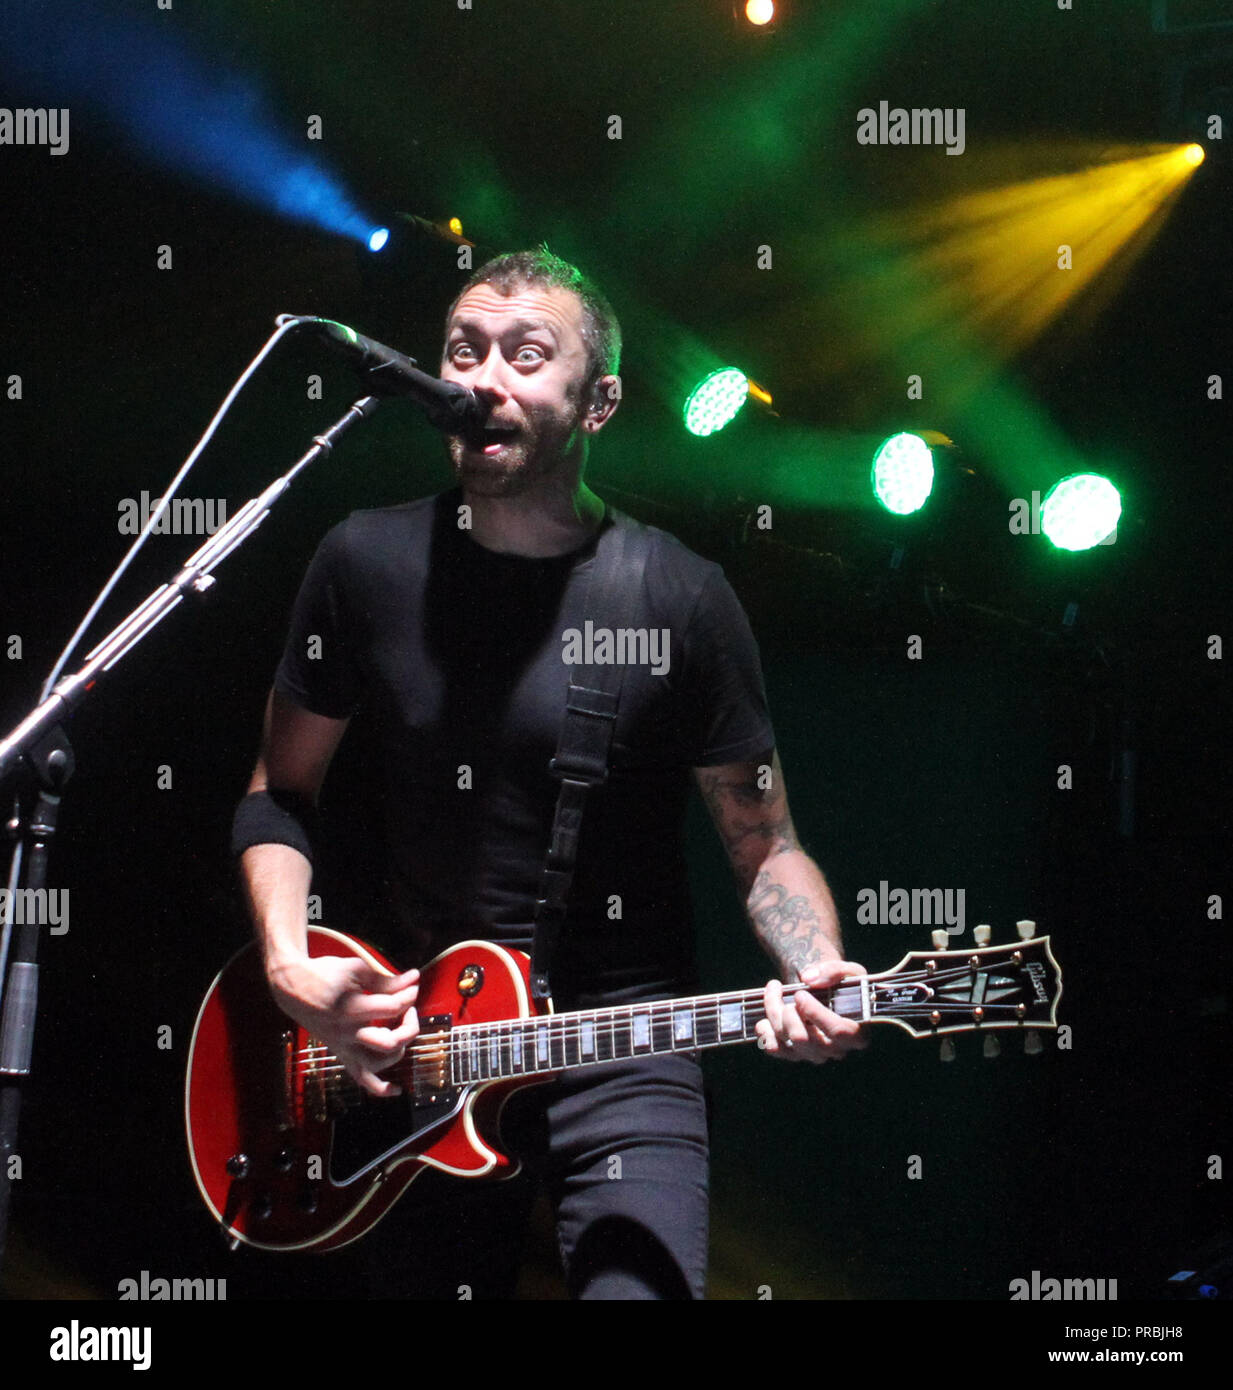 Tim Mcllrath with Rise Against performs at the Sunset Cove Amphitheater in Boca Raton, Florida on April 28, 2011. - Stock Image